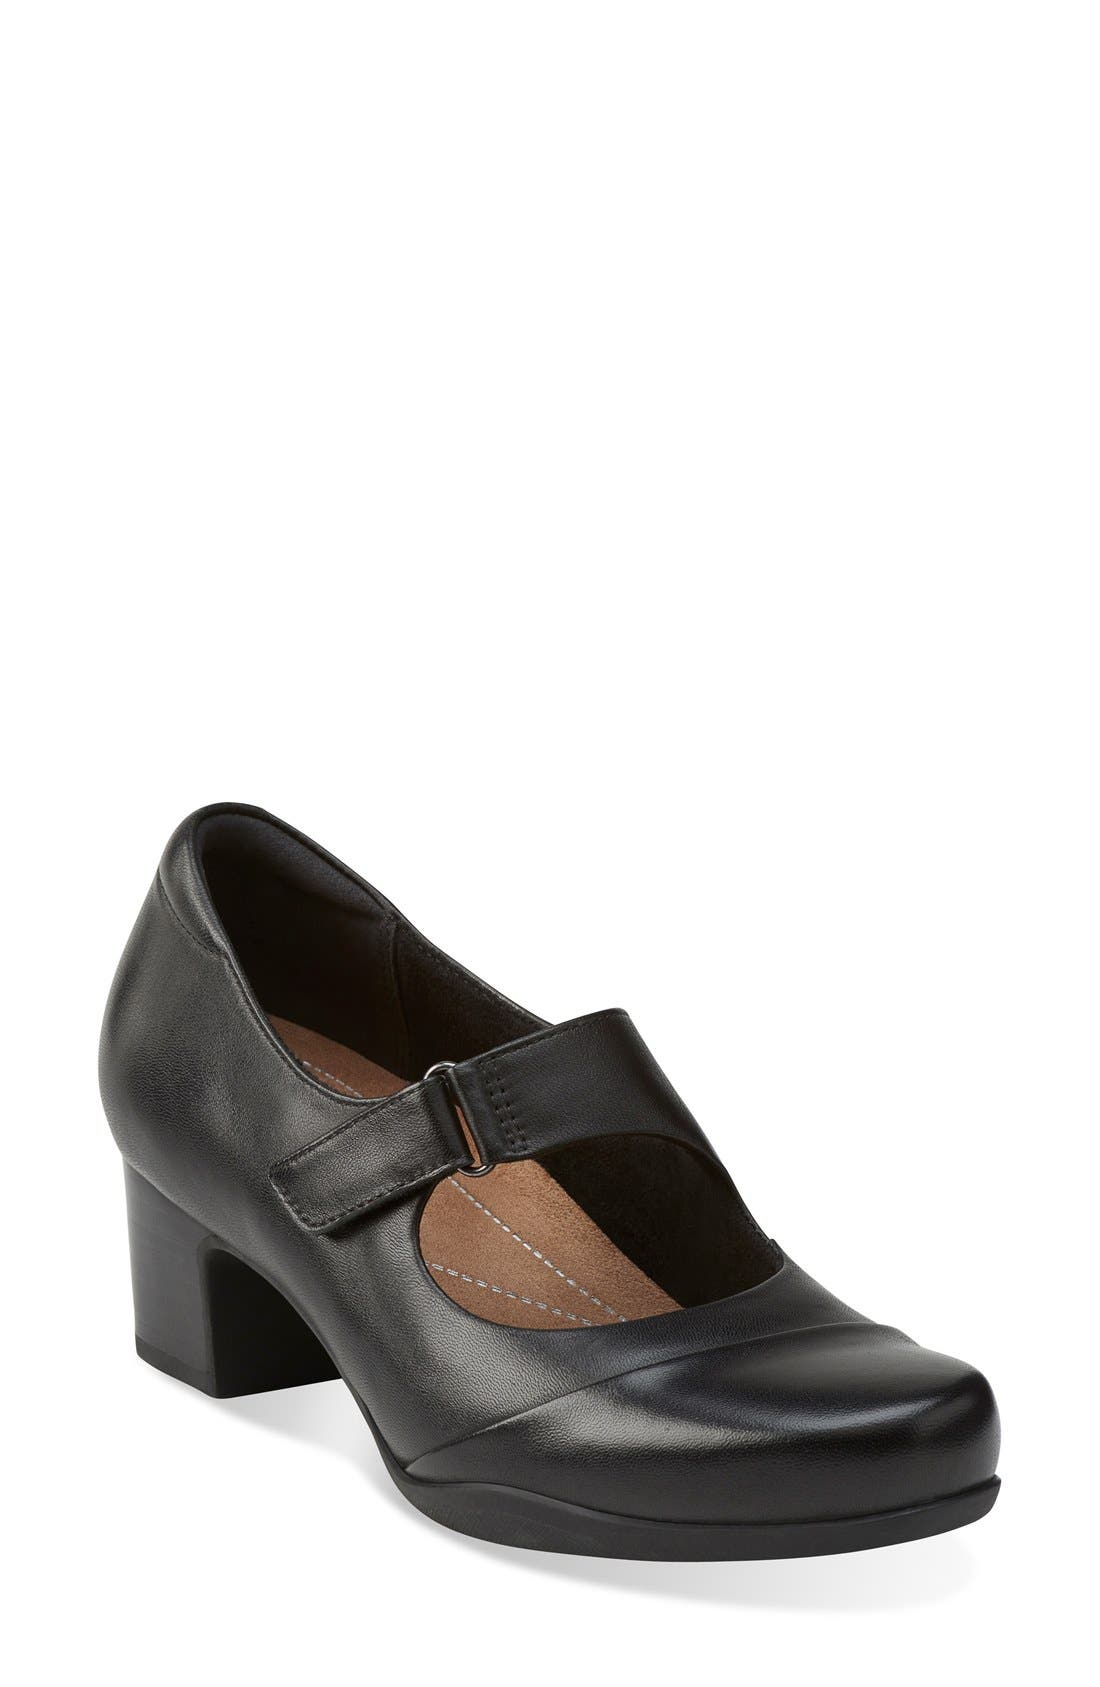 1ac91cdb007d Women's Mary Jane Pumps | Nordstrom